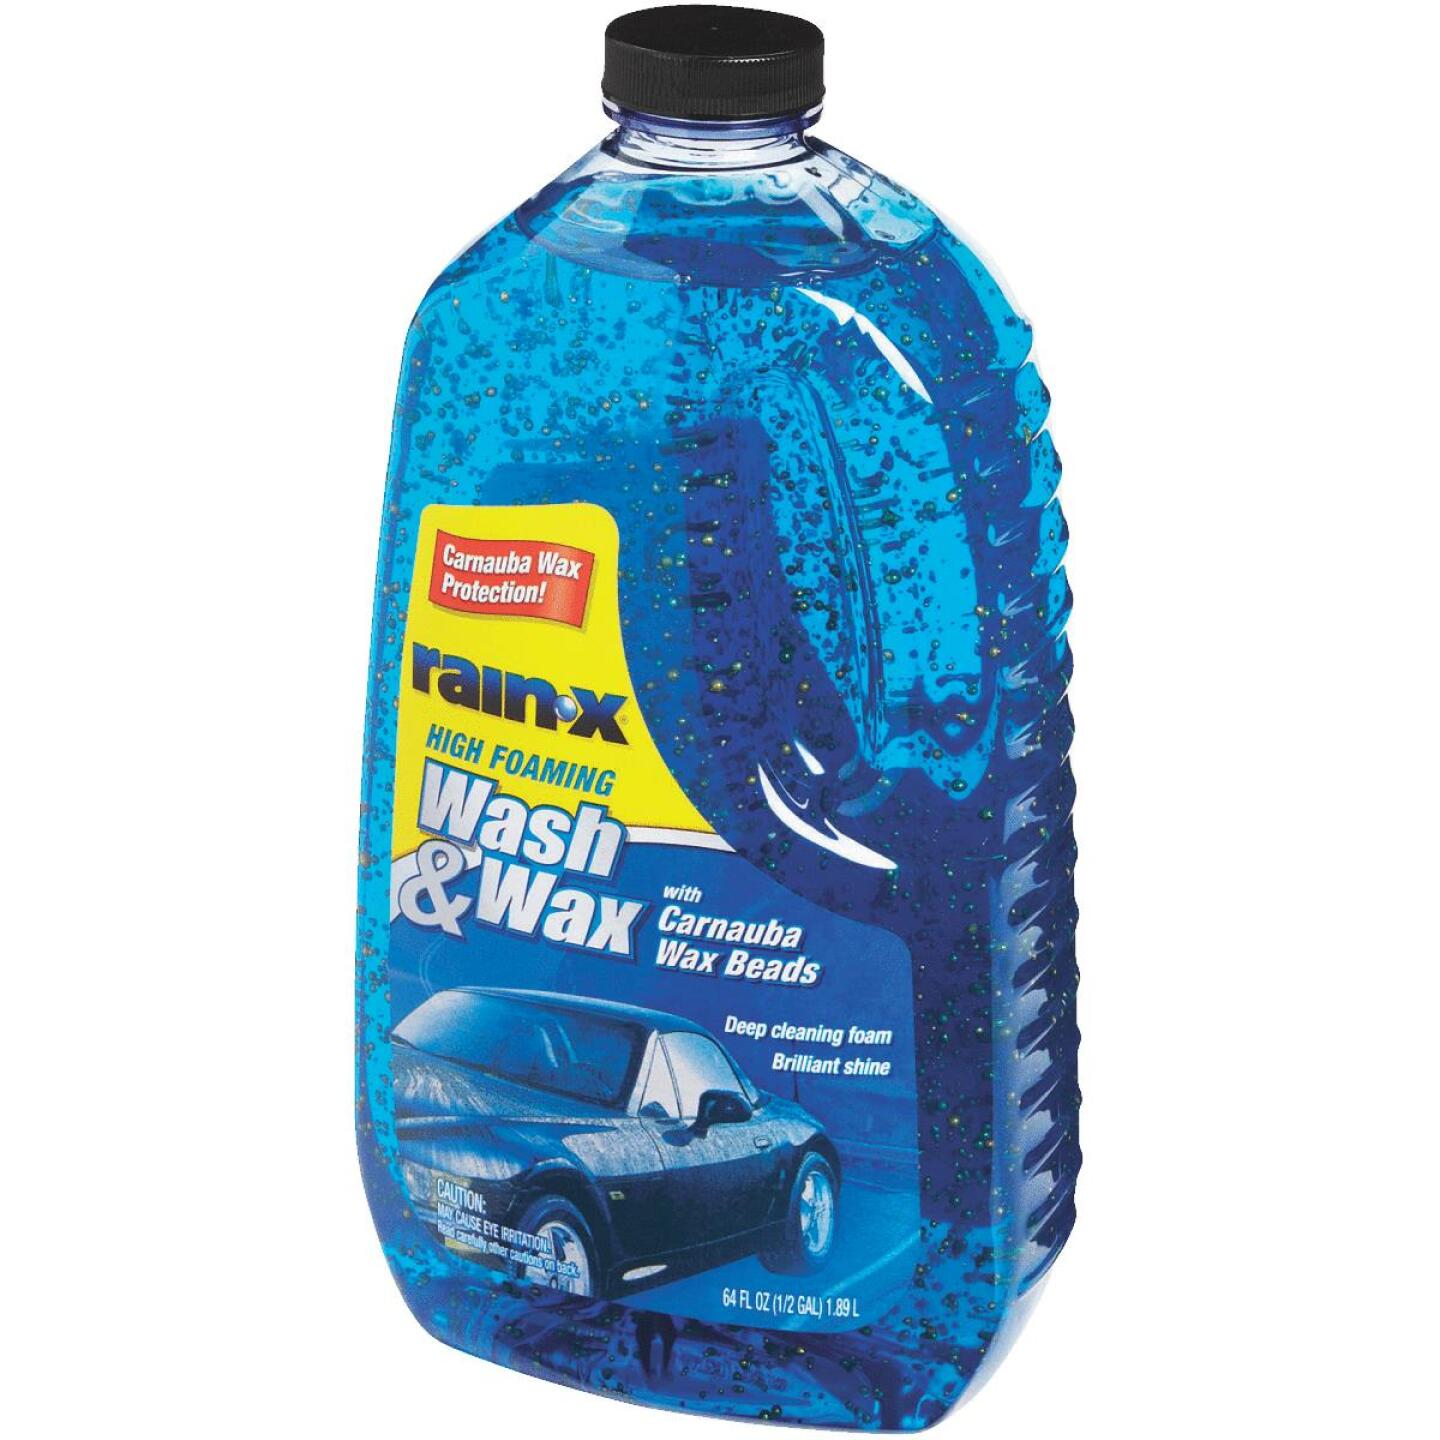 RAIN-X 64 oz Foam with Carnauba Wax Beads Car Wash Image 3